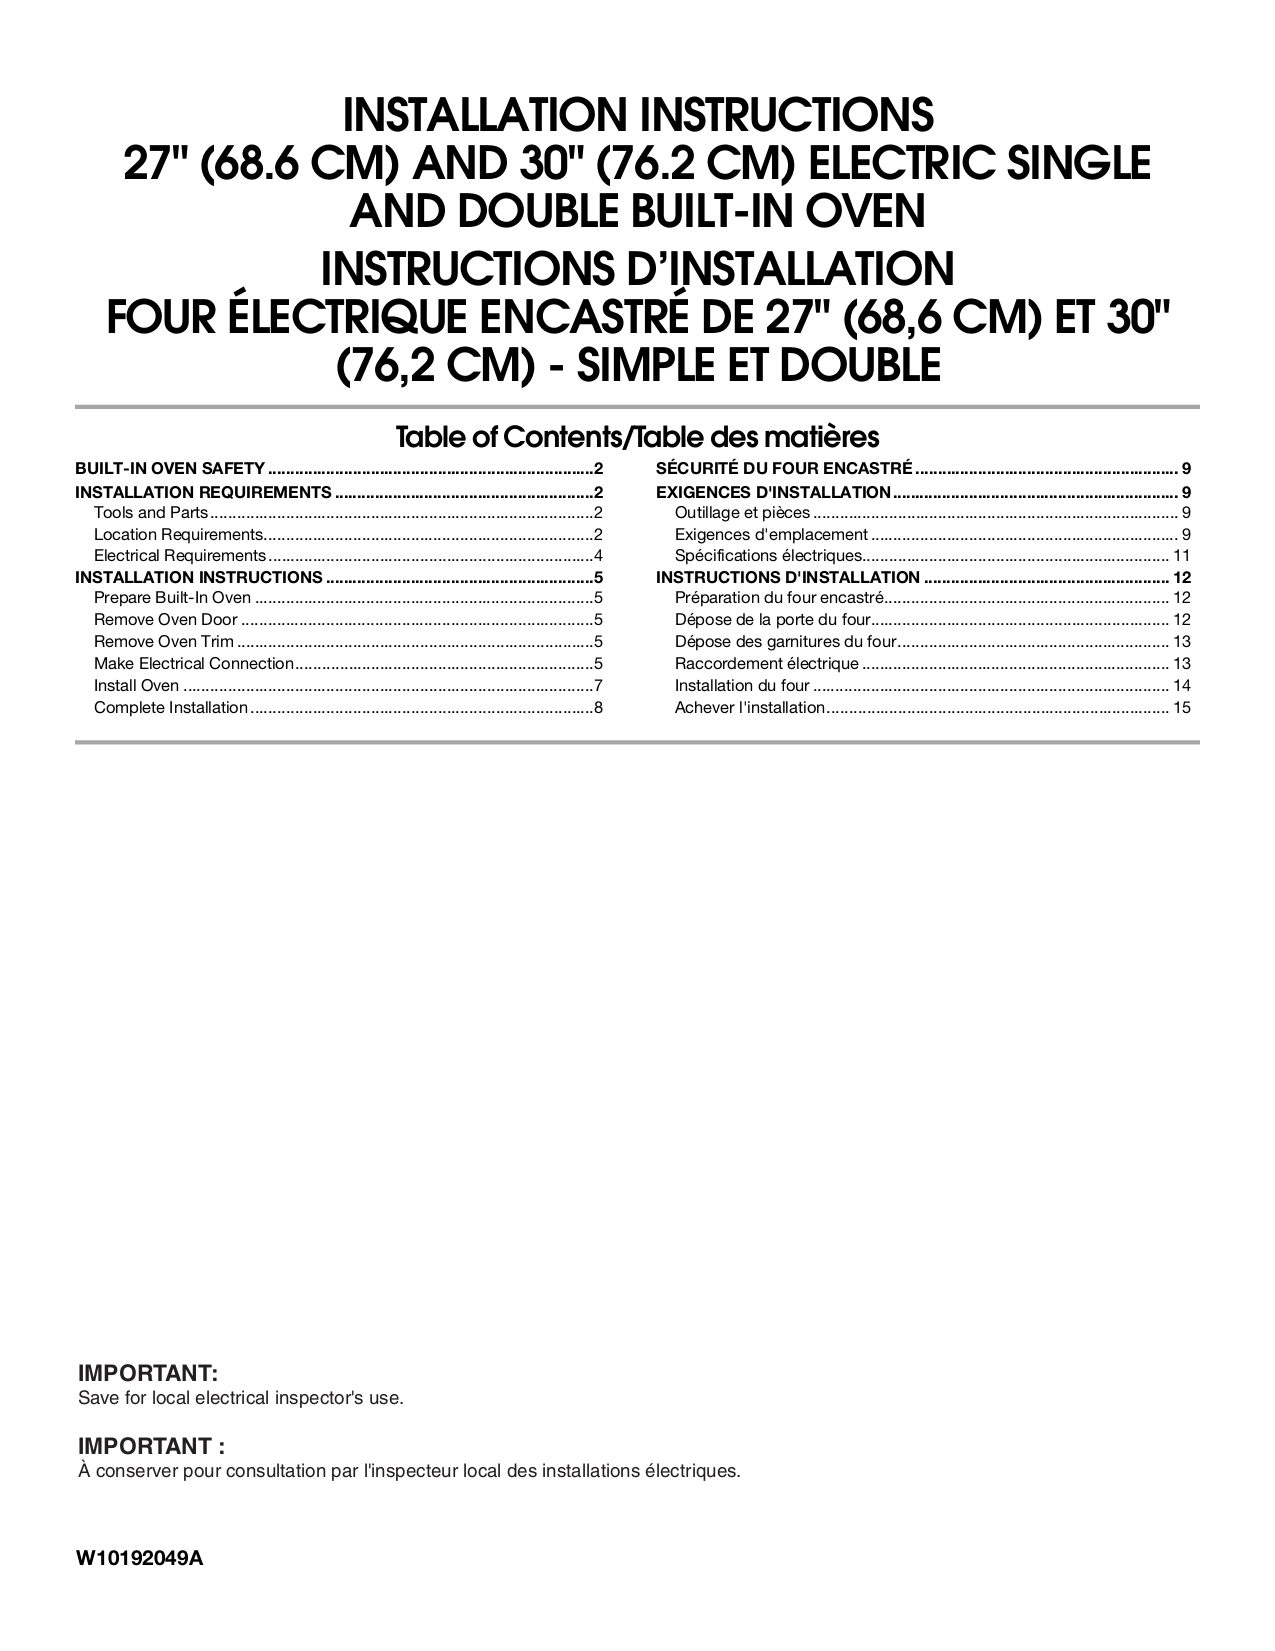 Whirlpool Built In Oven Installation Instructions Wiring Diagram Instruction Dimension Guide Rbd305pv Pdf Page Preview